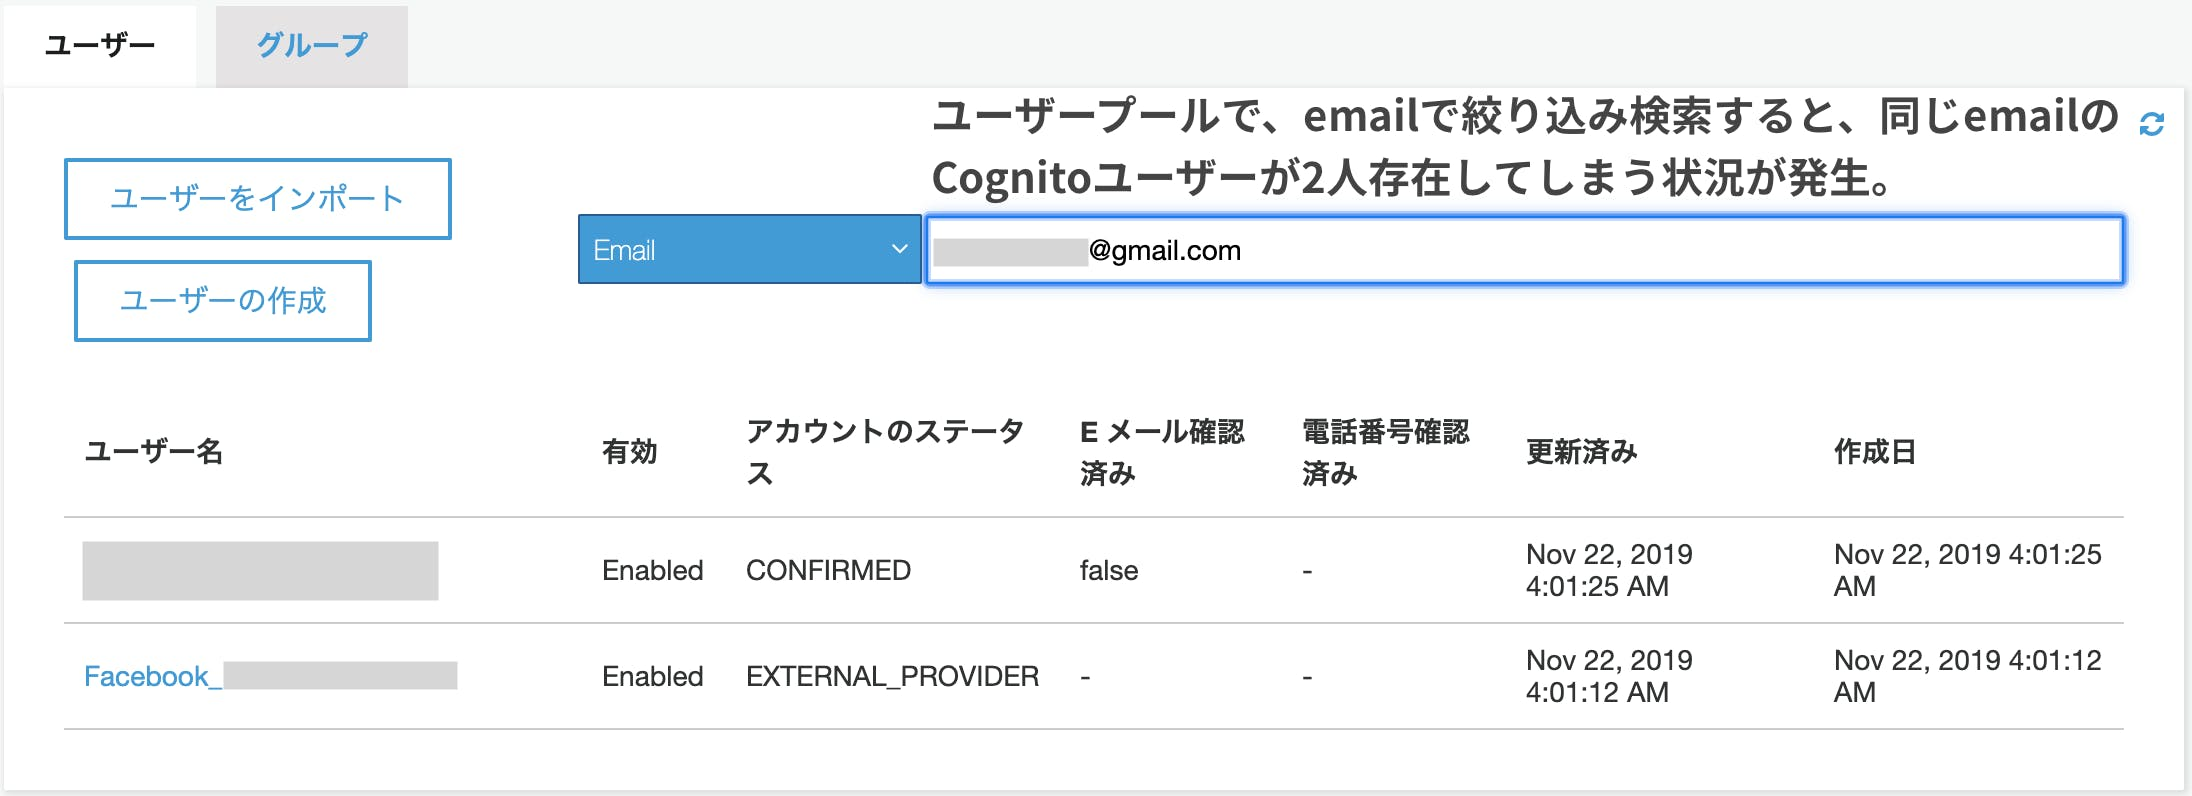 cognitoemail,png.png